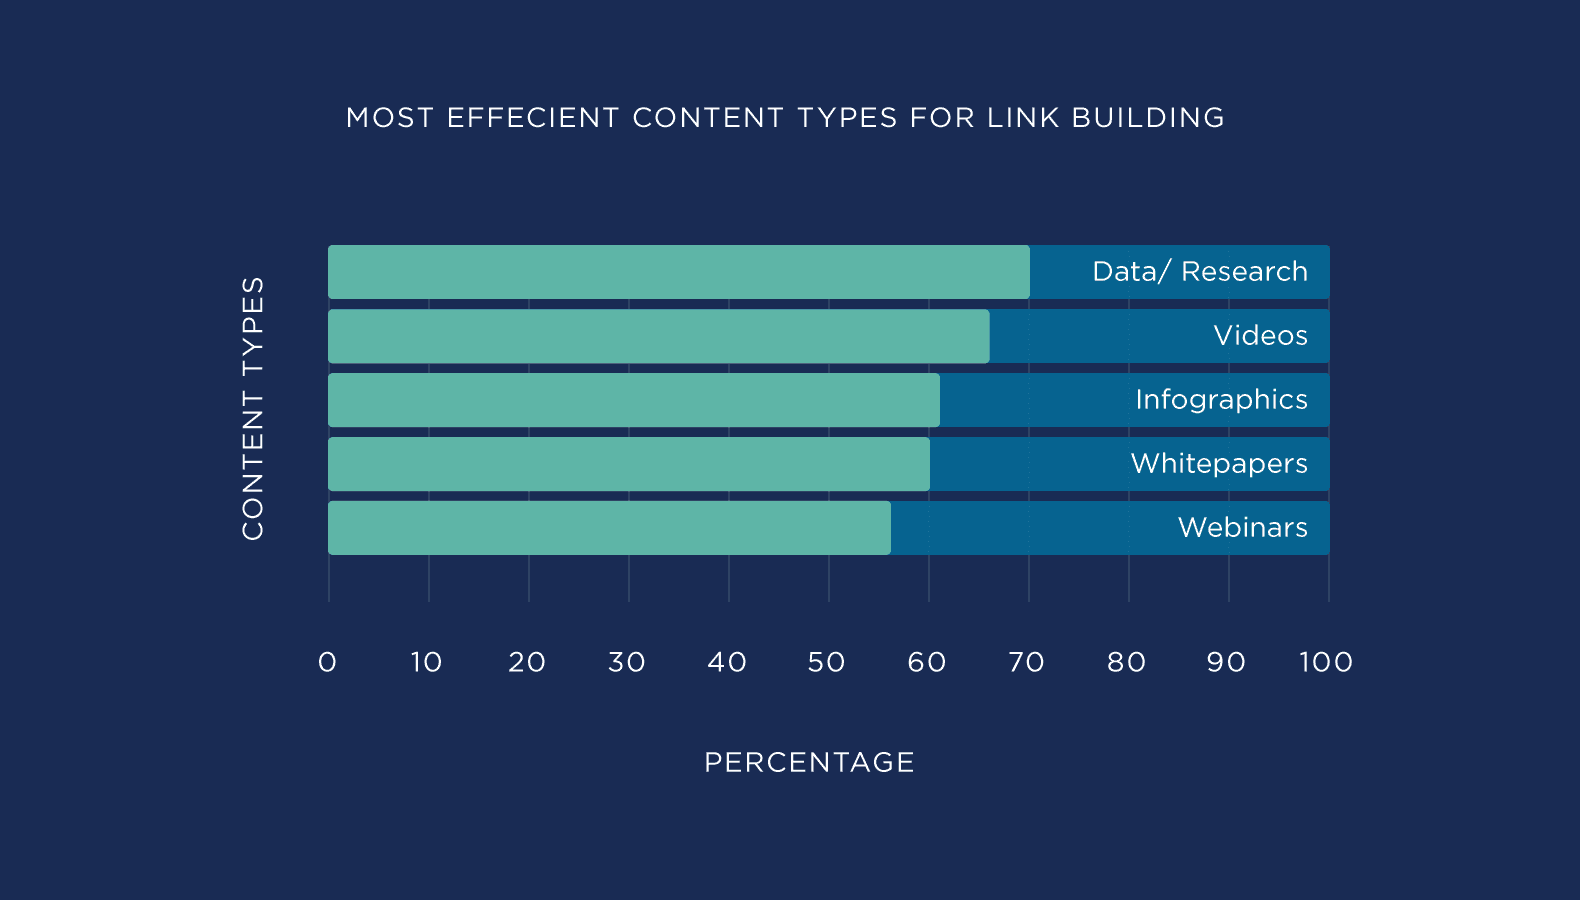 Survey results are most efficient content types for link building